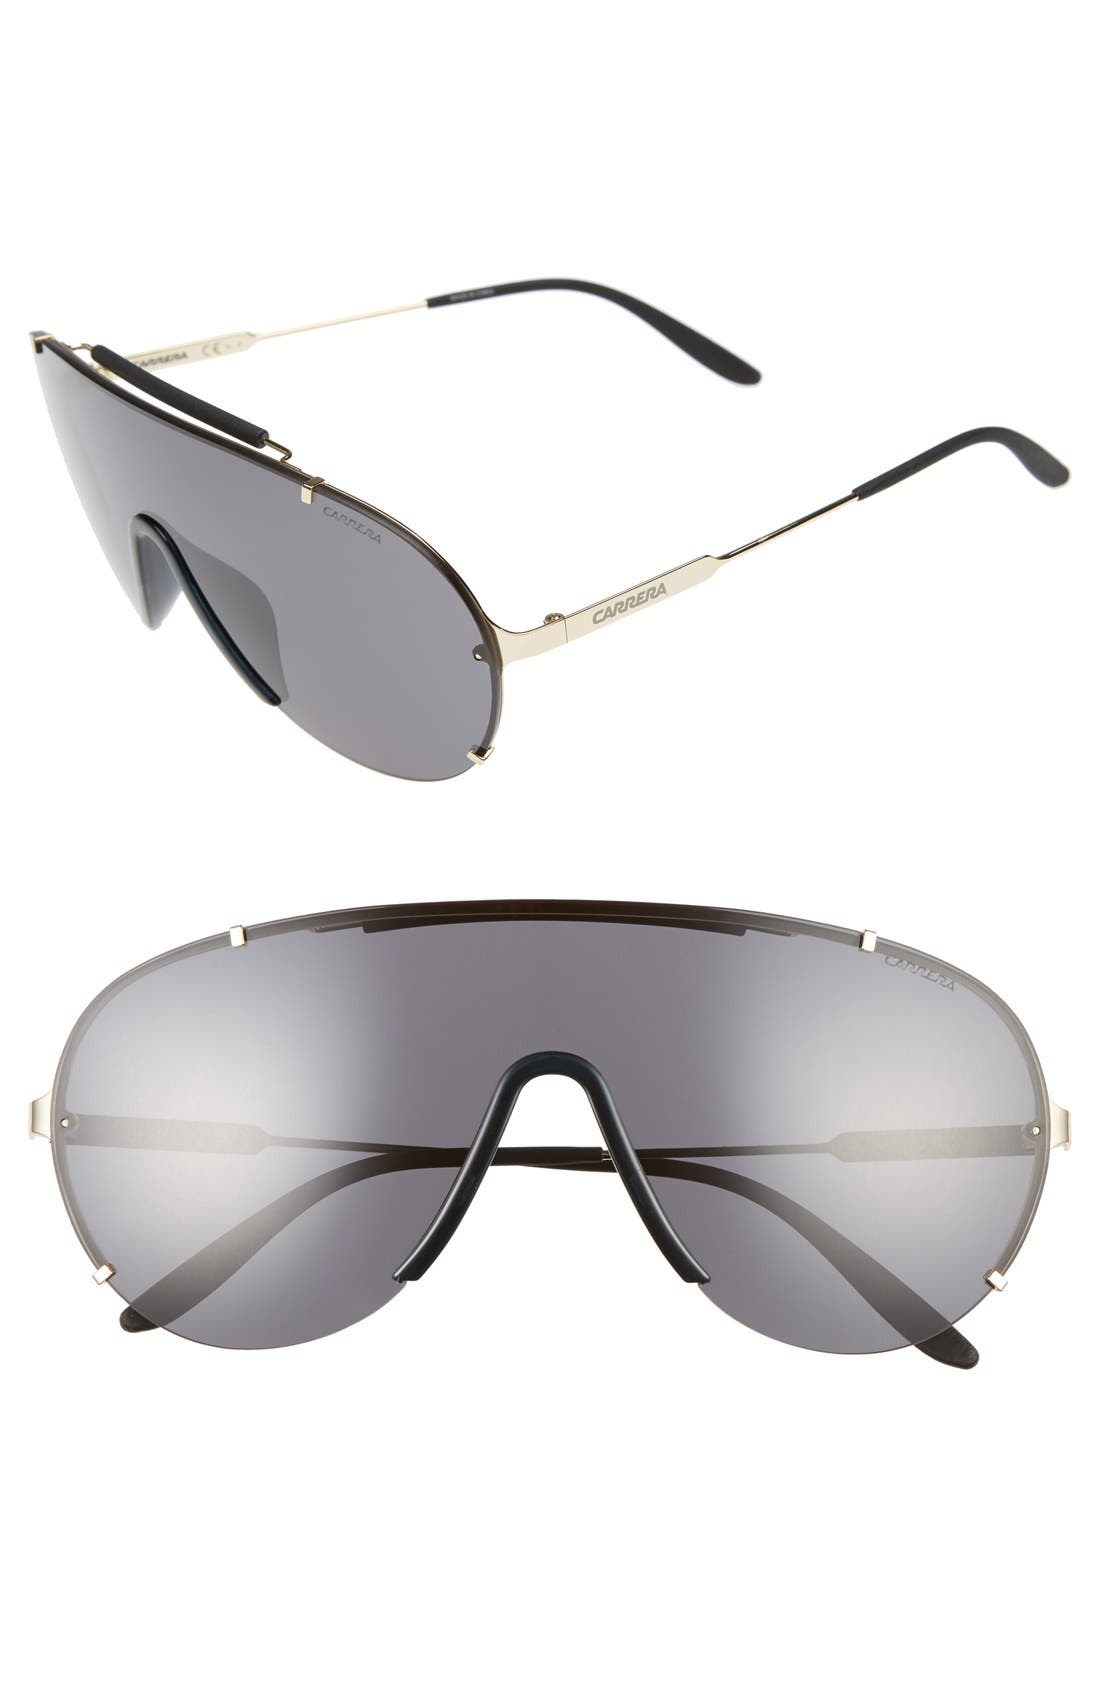 Carrera Eyewear 99mm Sunglasses